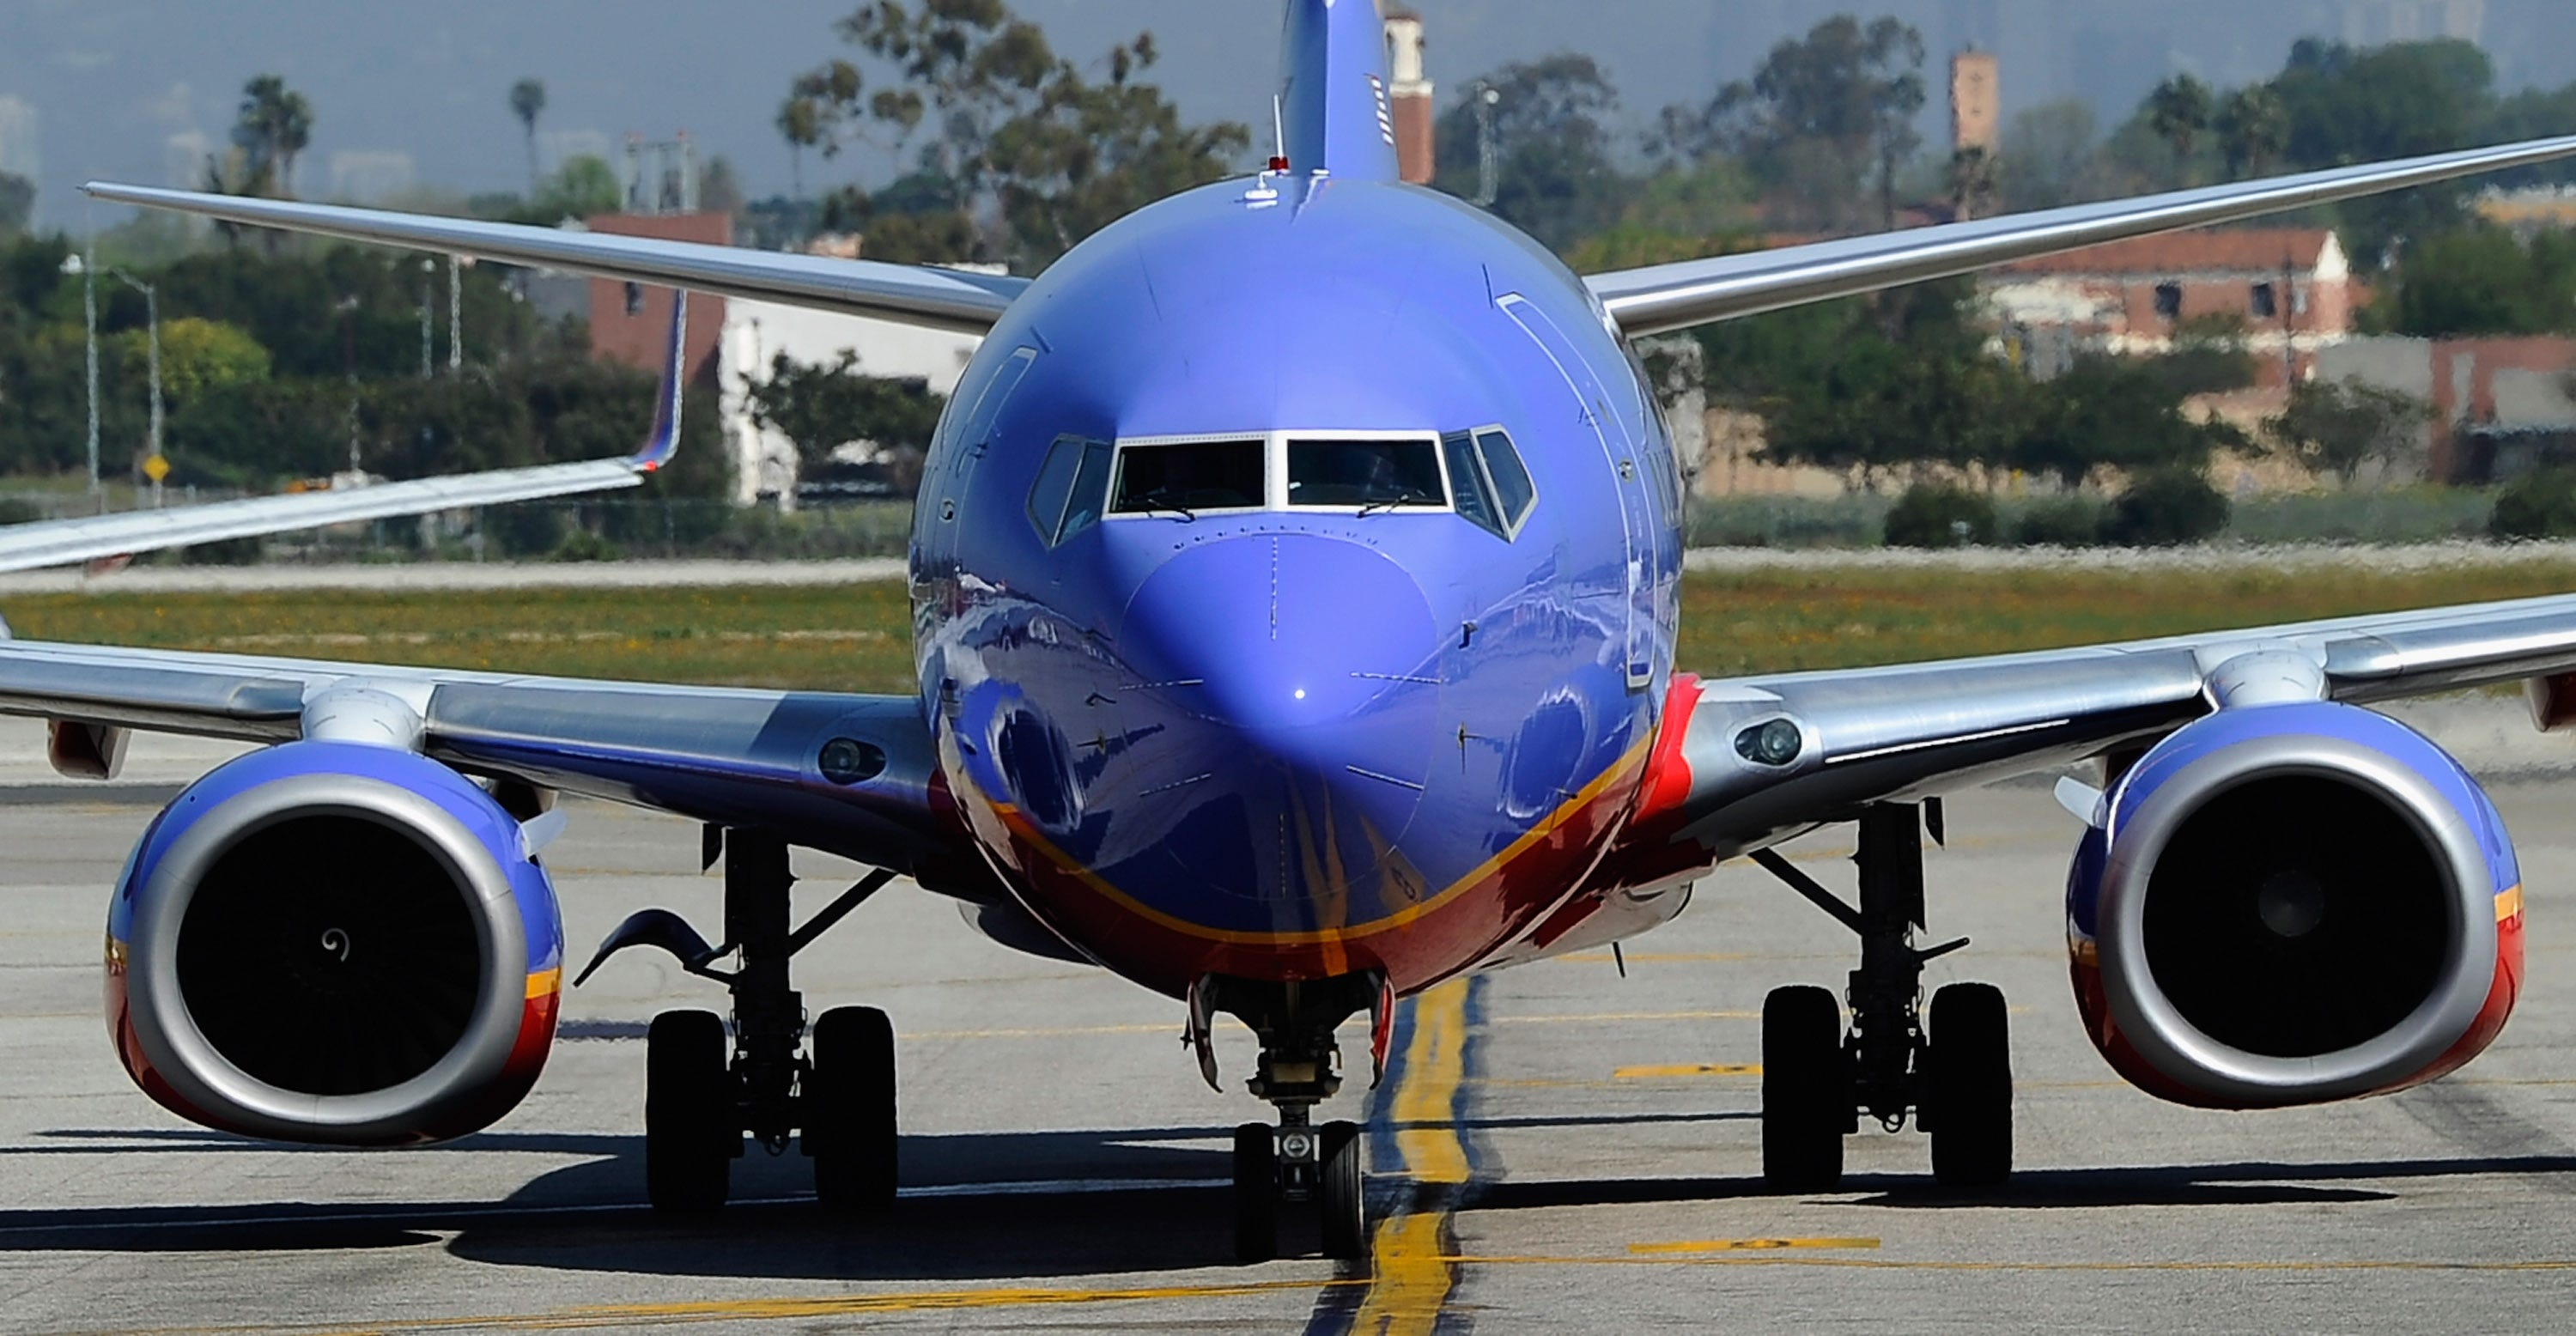 FAA orders new inspections of popular Boeing 737 model. Could it affect flights?